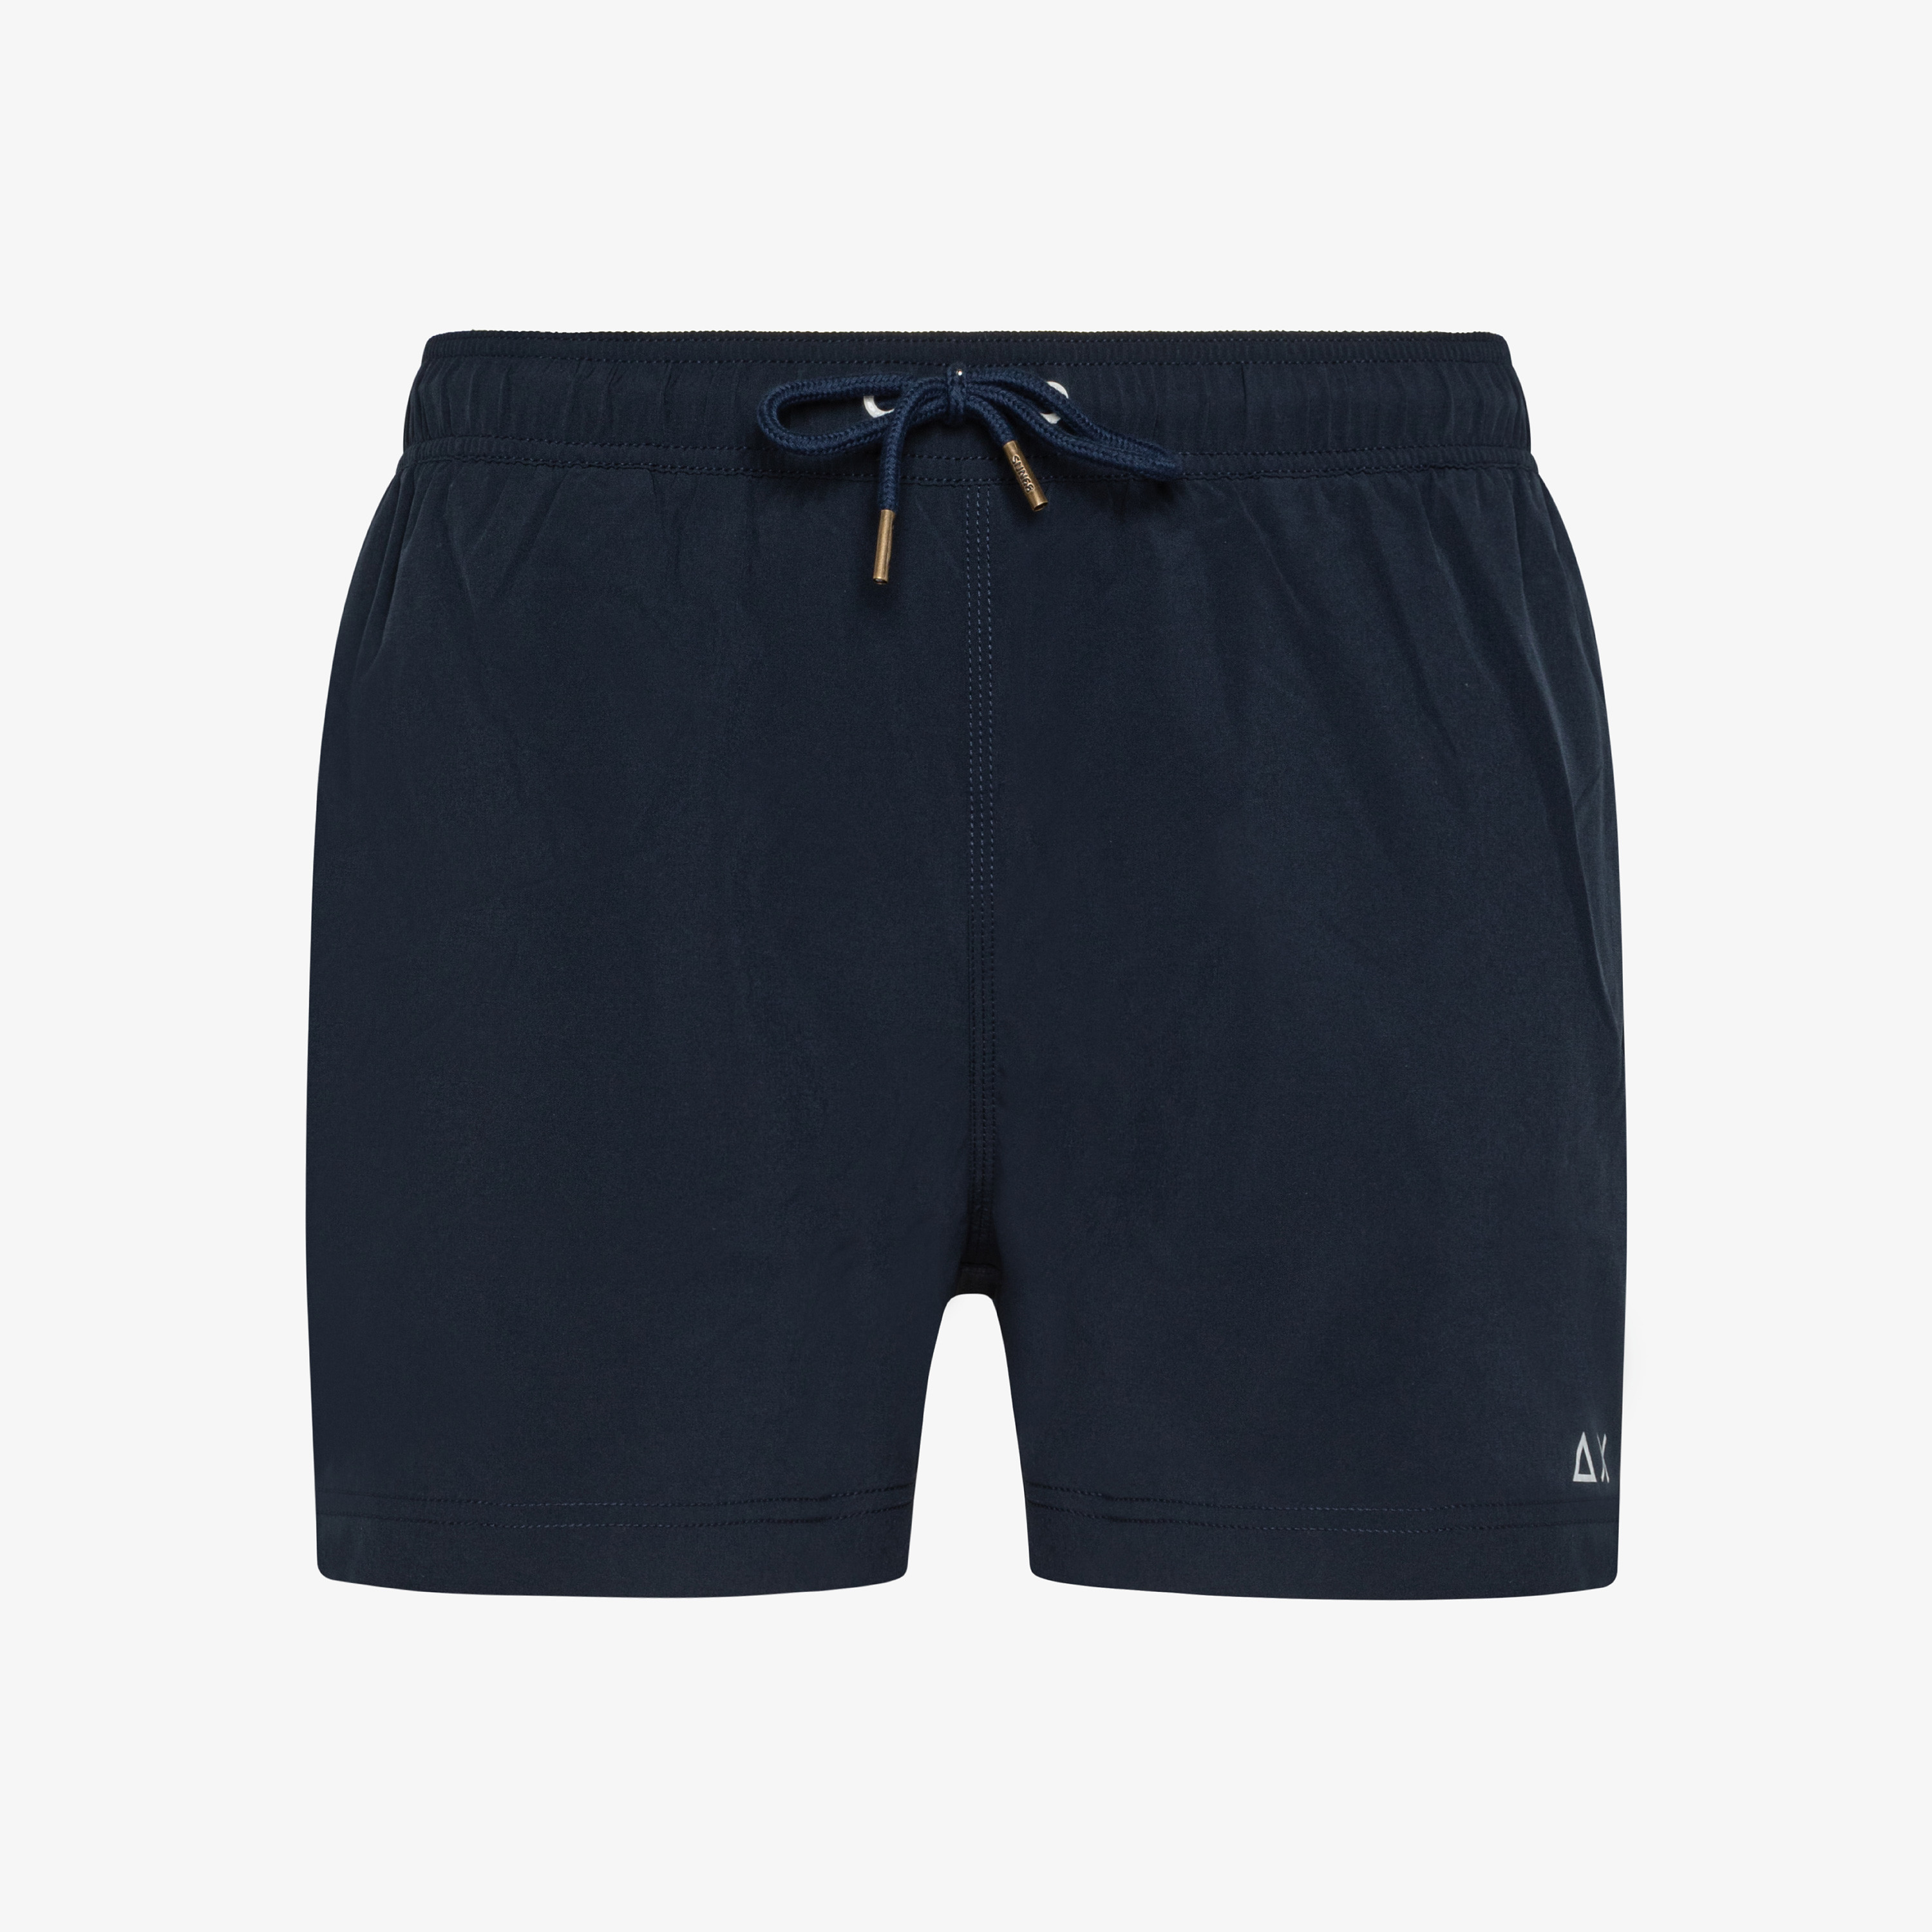 SWIM PANT SOLID NAVY BLUE